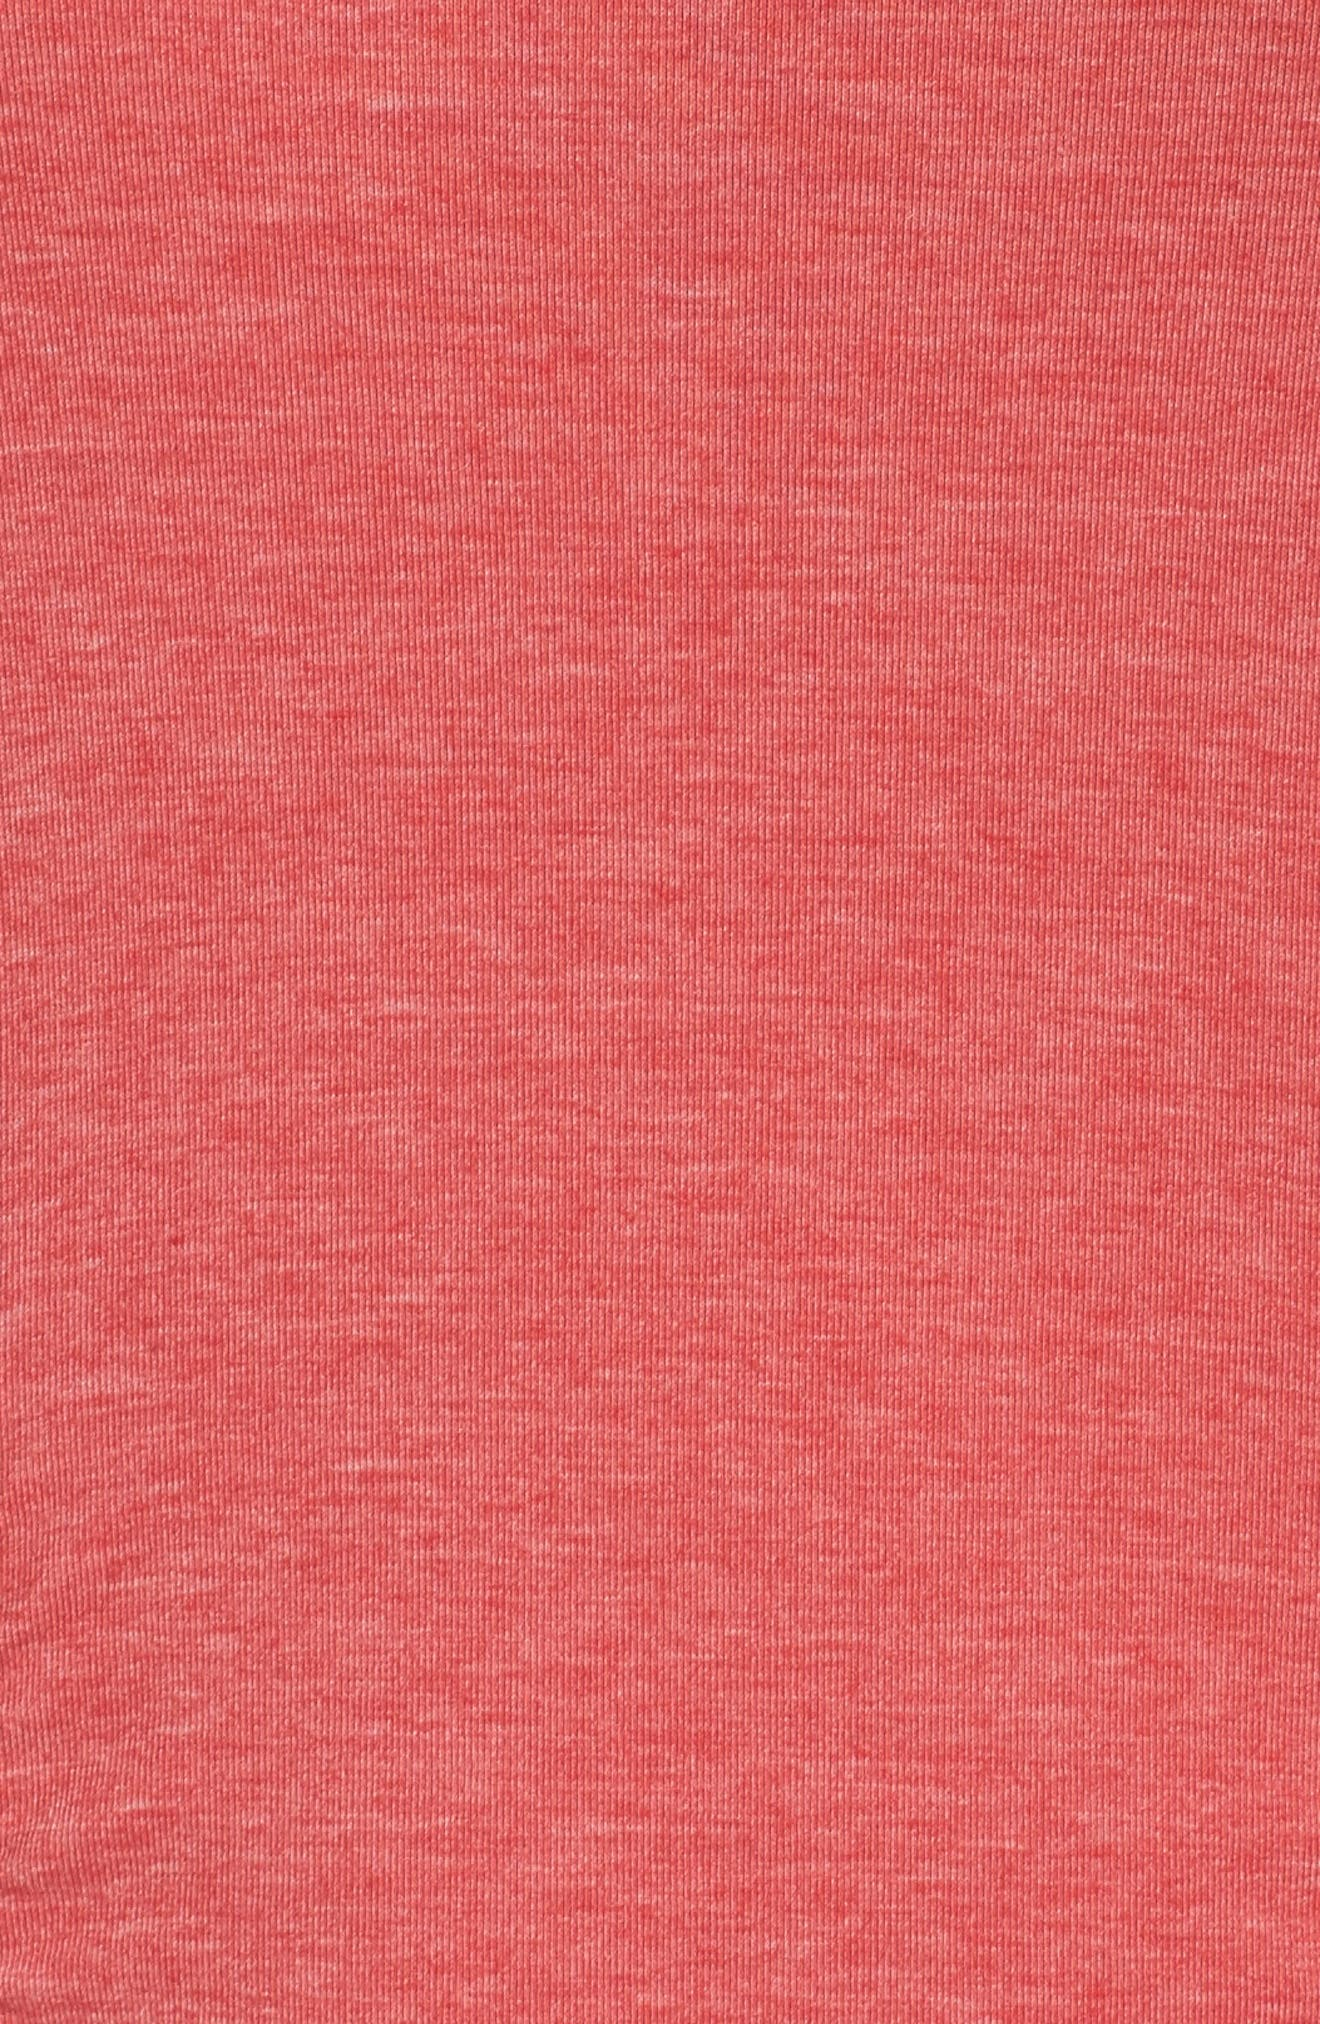 'Z 6' Ruched Tee,                             Alternate thumbnail 73, color,